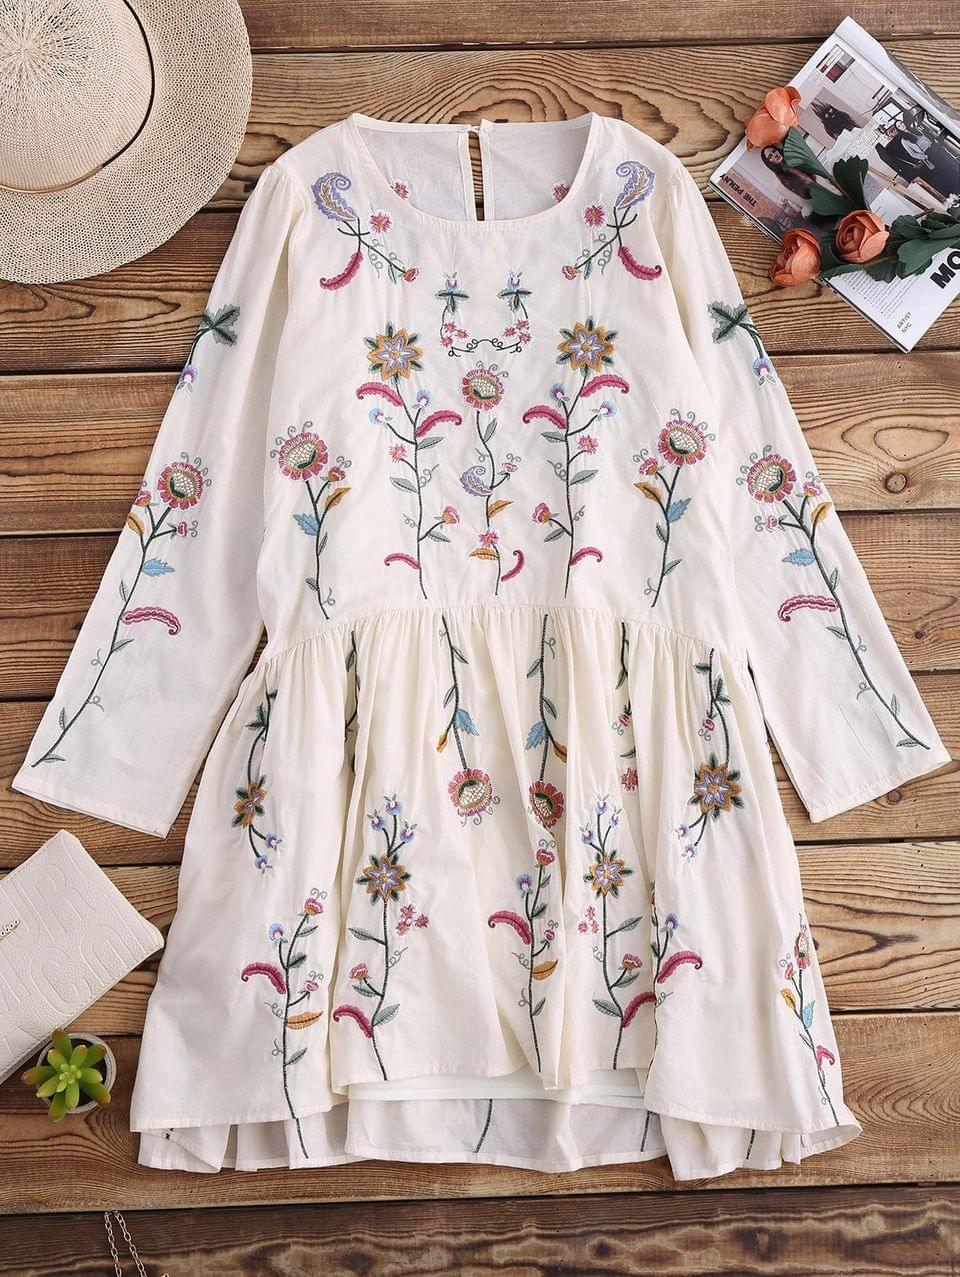 Women's Embroidered Smock Dress With Slip Dress - Off White L